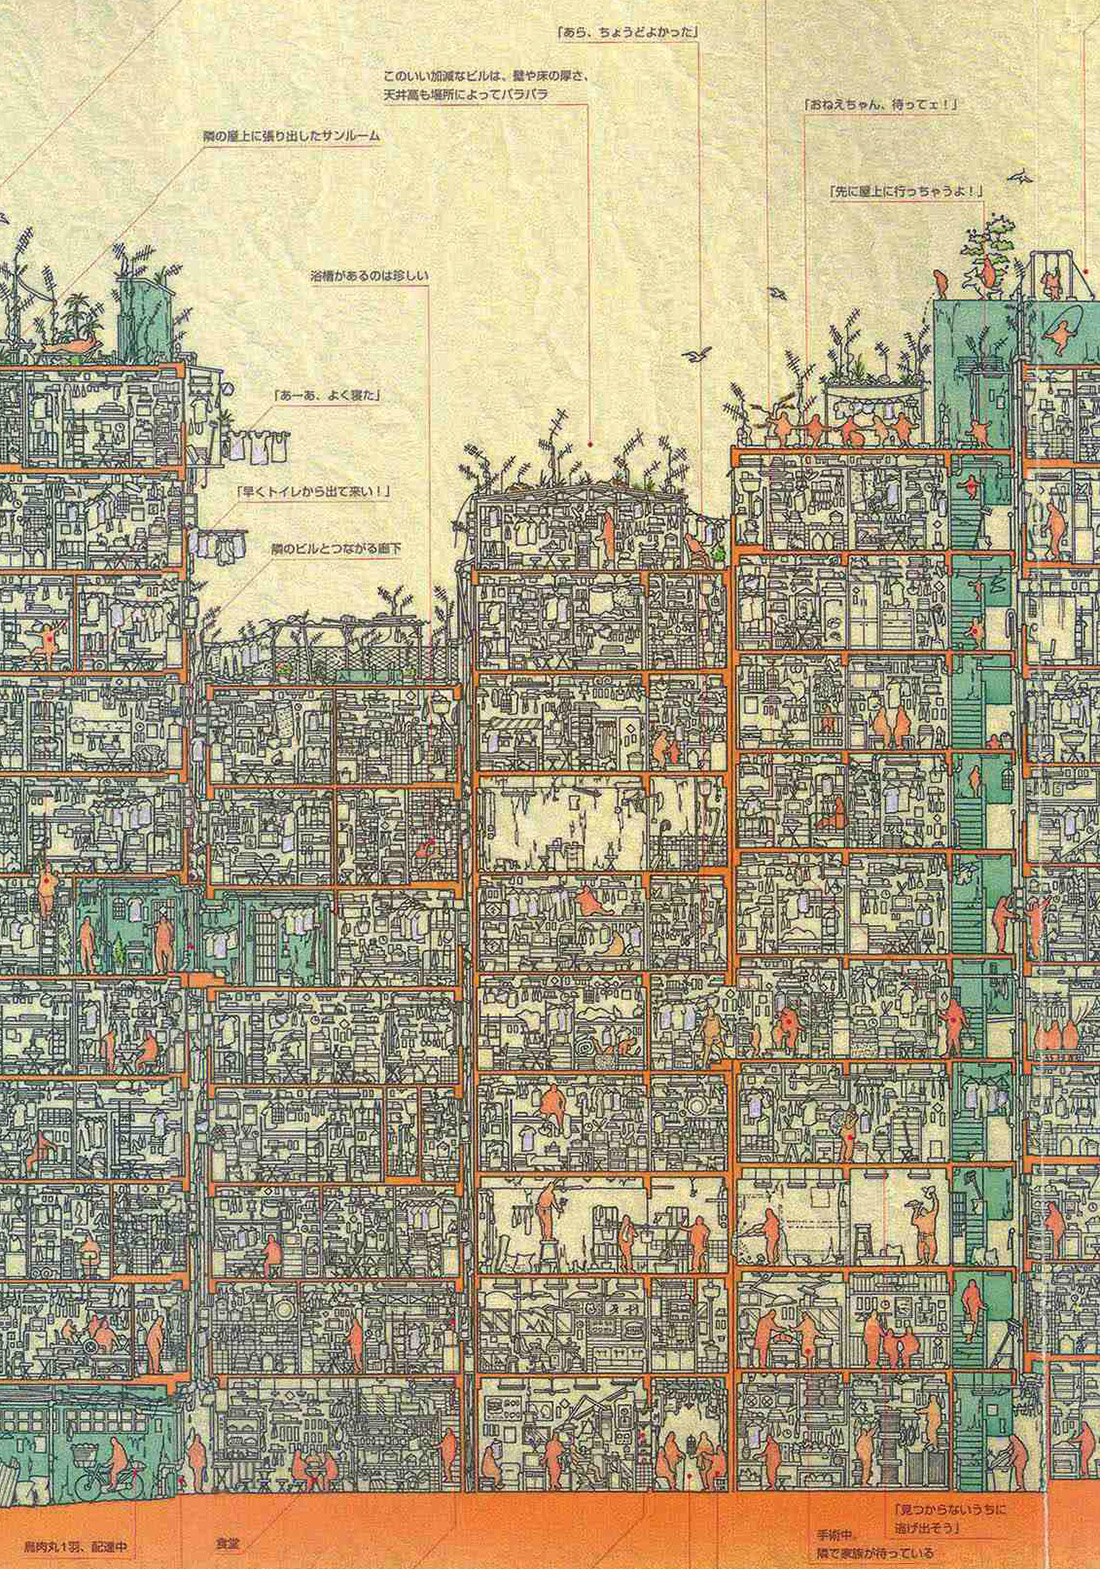 Kowloon Walled City 29